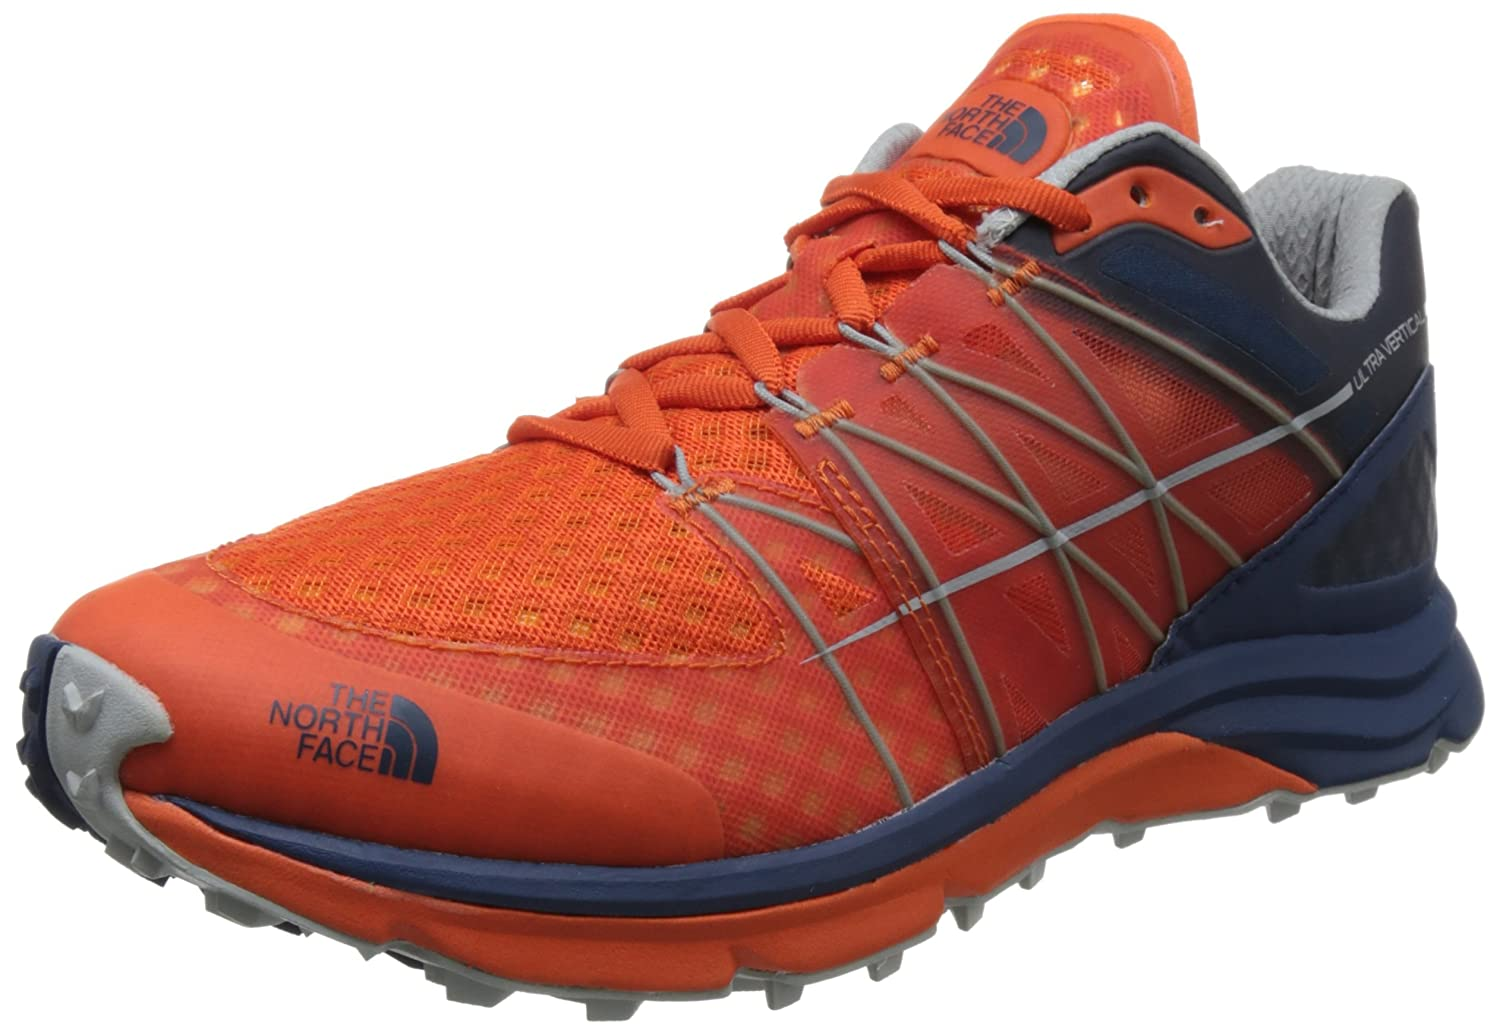 THE NORTH FACE Herren M Ultra Vertical Fitnessschuhe